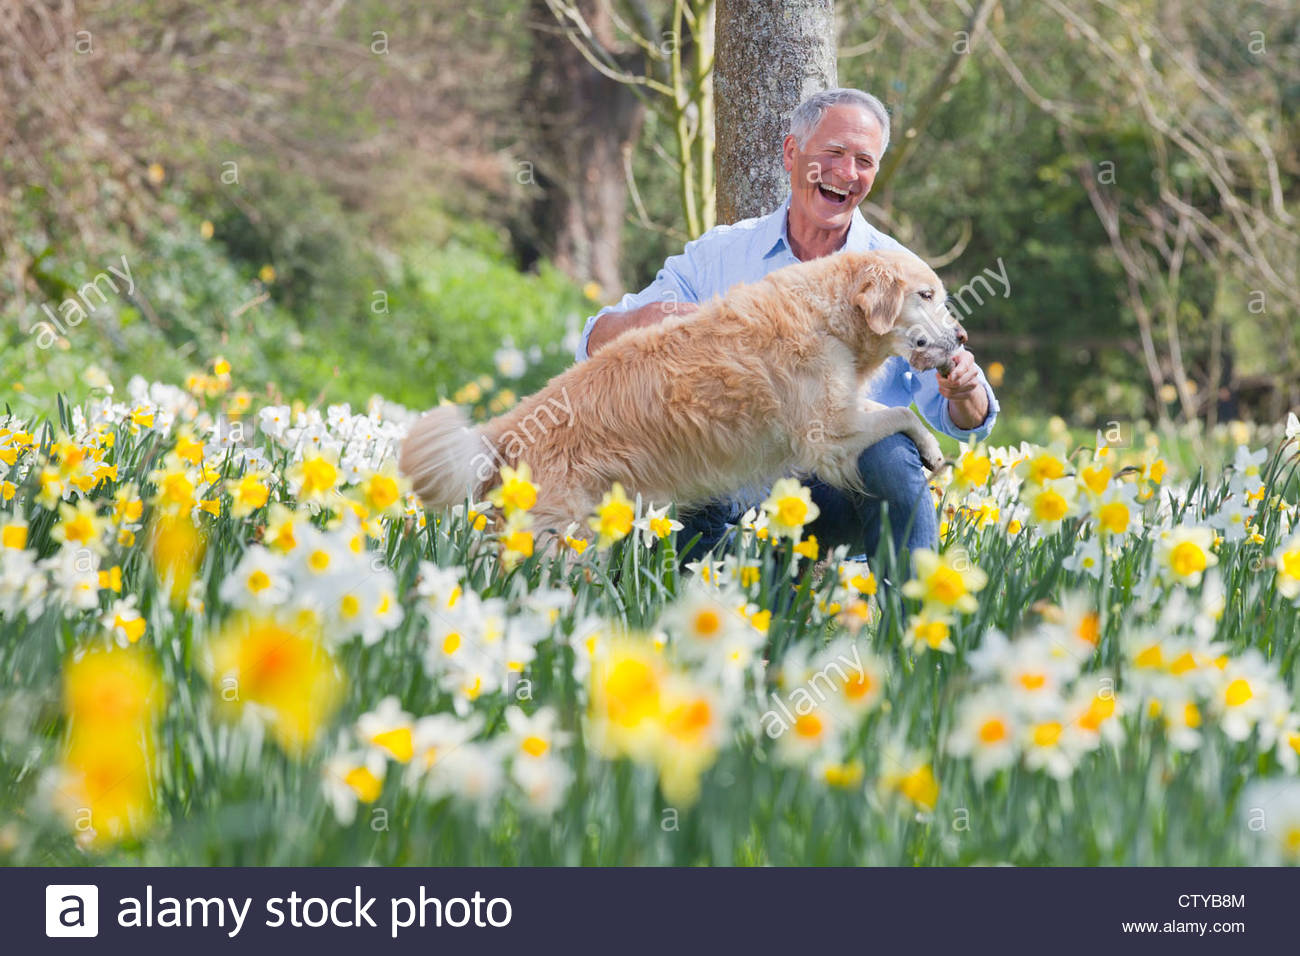 Happy man playing with dog in sunny daffodil field - Stock Image